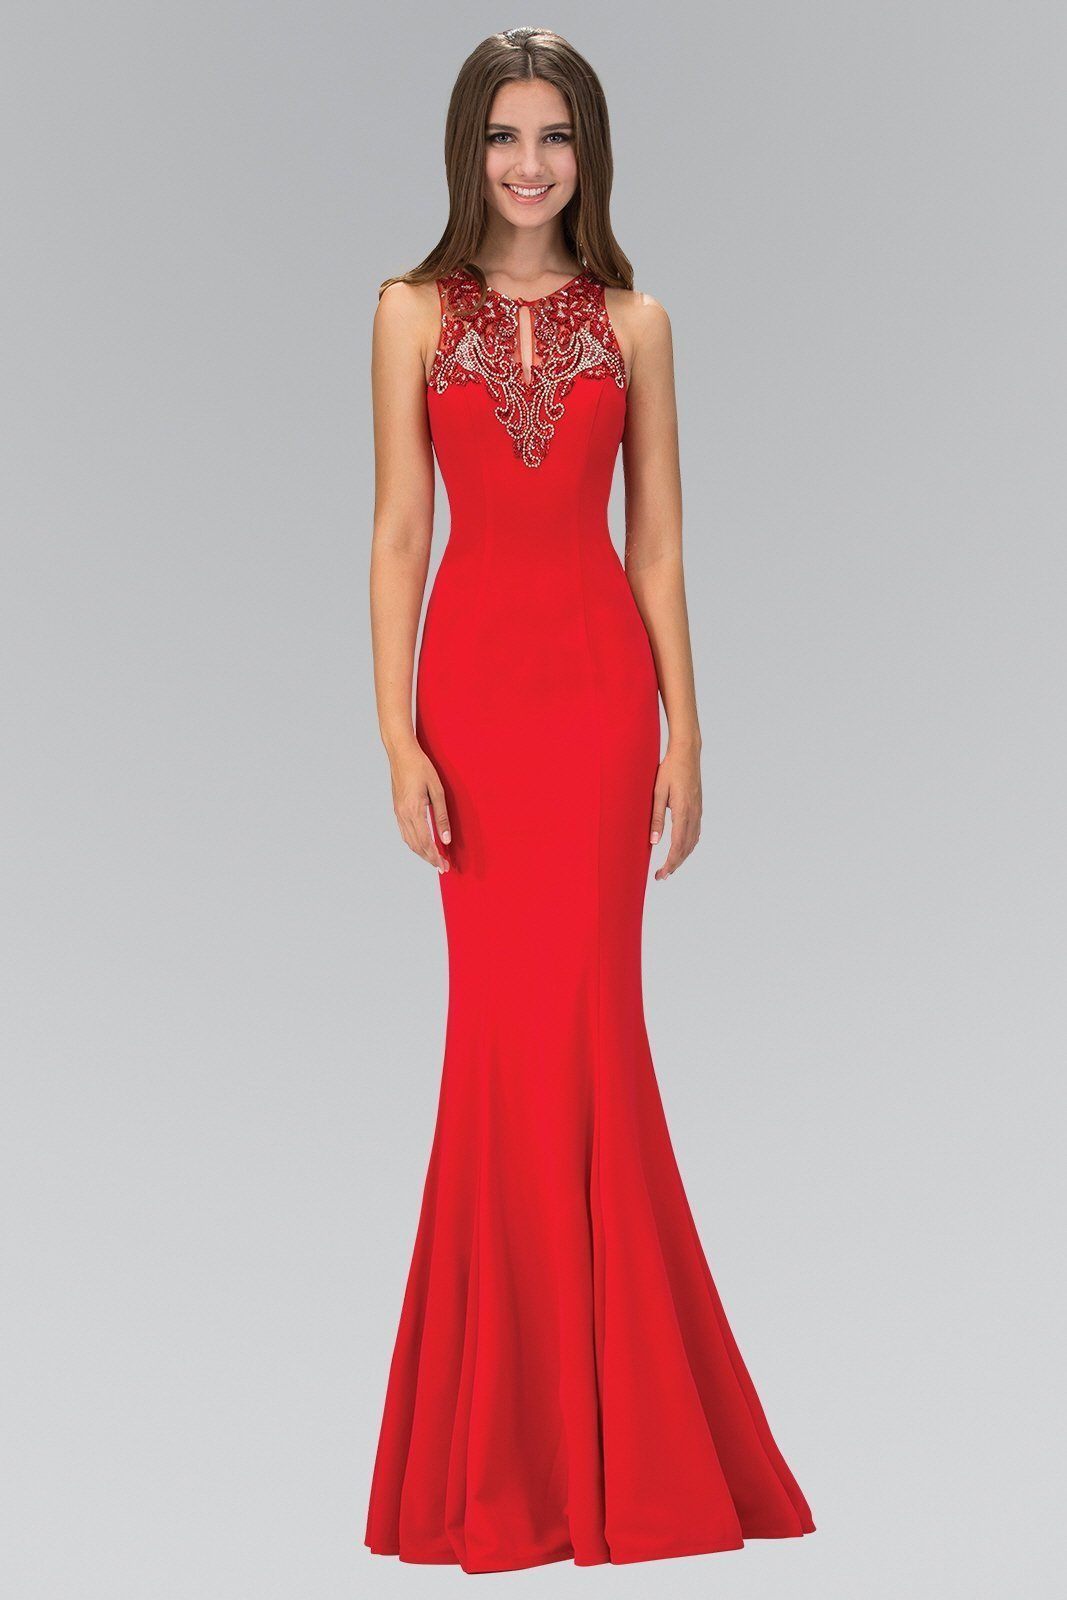 a22eed03266 Sexy red prom dress gls 1315 in 2019 | Prom/Homecoming Dresses ...